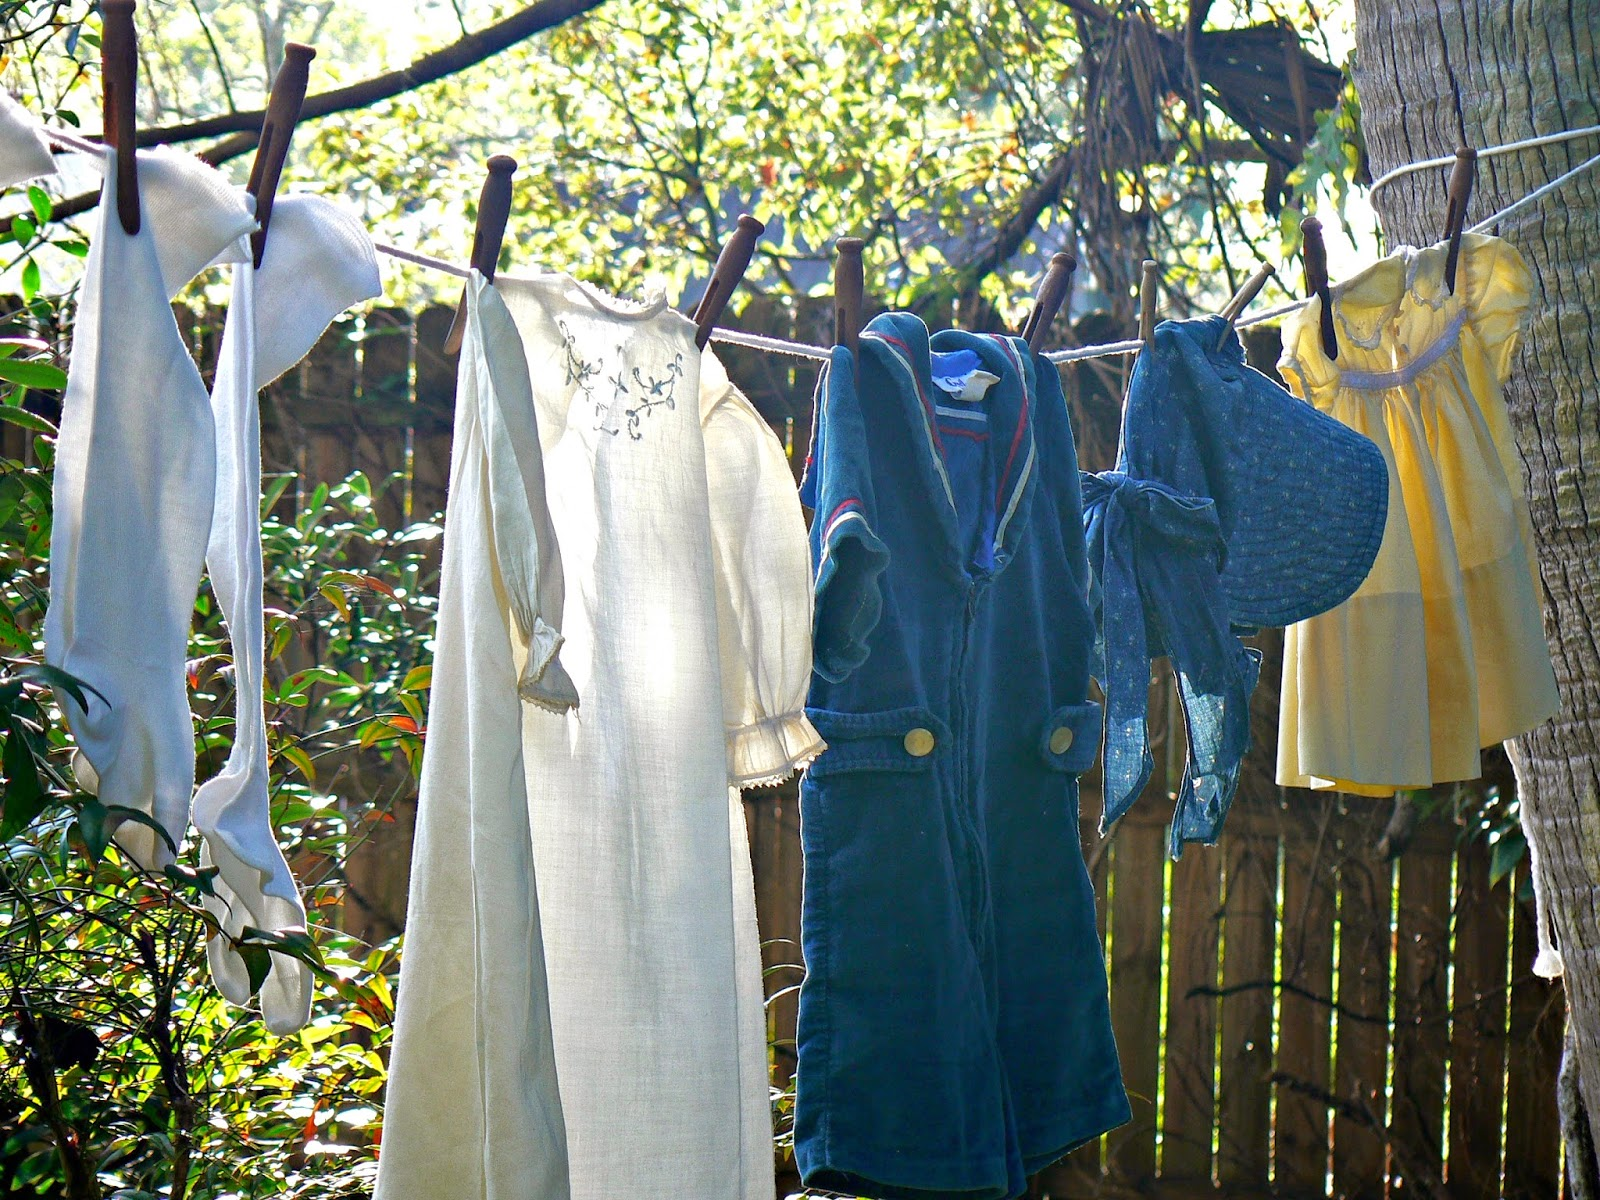 my crazy quilt life on the line clothesline